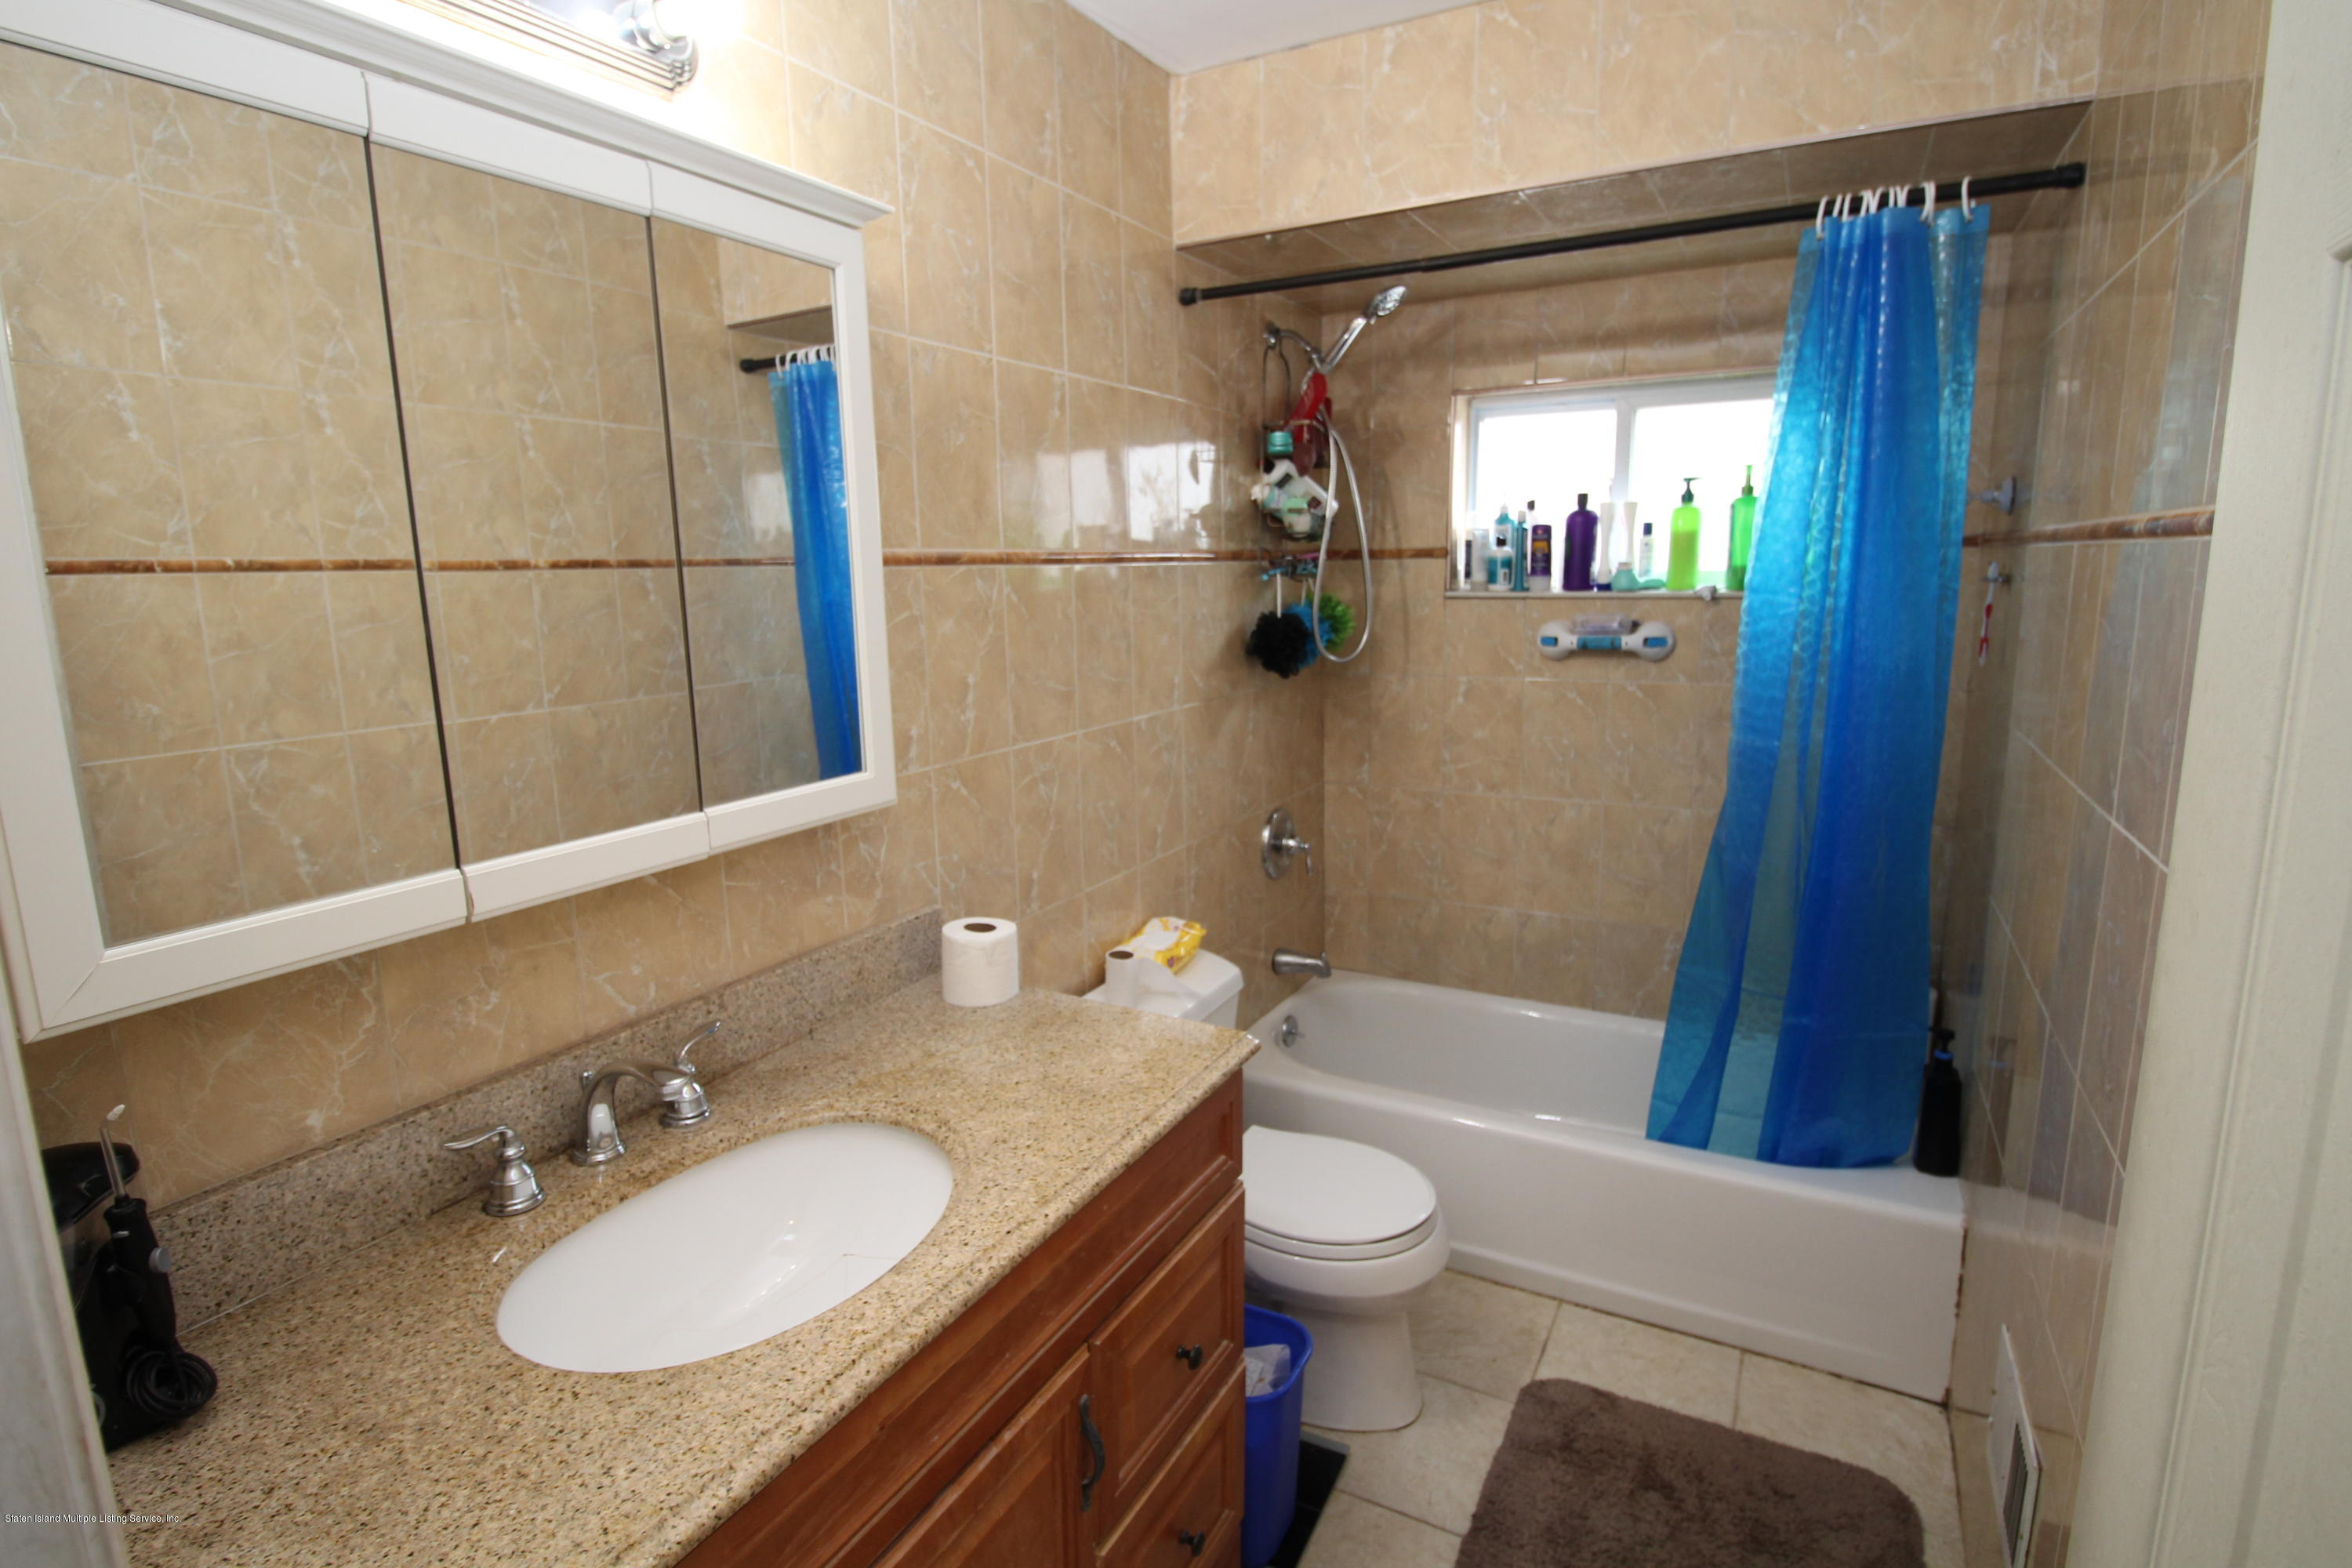 Single Family - Semi-Attached 48 Mulberry Avenue  Staten Island, NY 10314, MLS-1126171-12